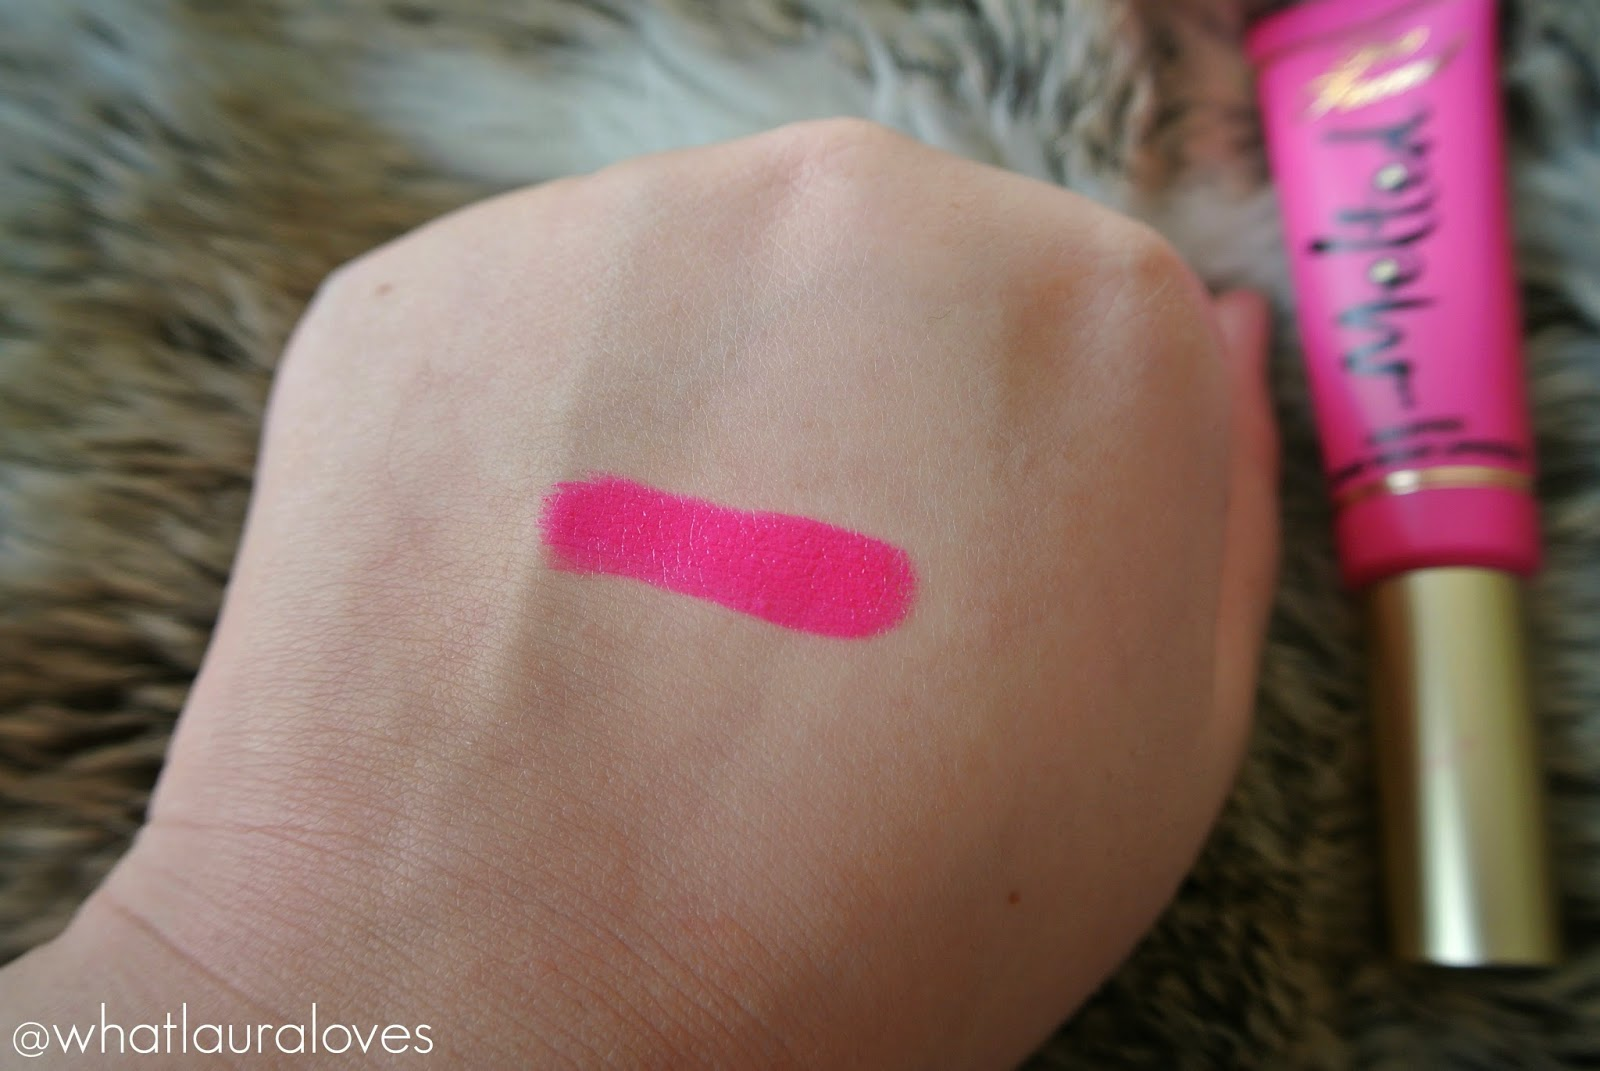 Too Faced Melted Lipstick in Melted Fuchsia Review and Swatches